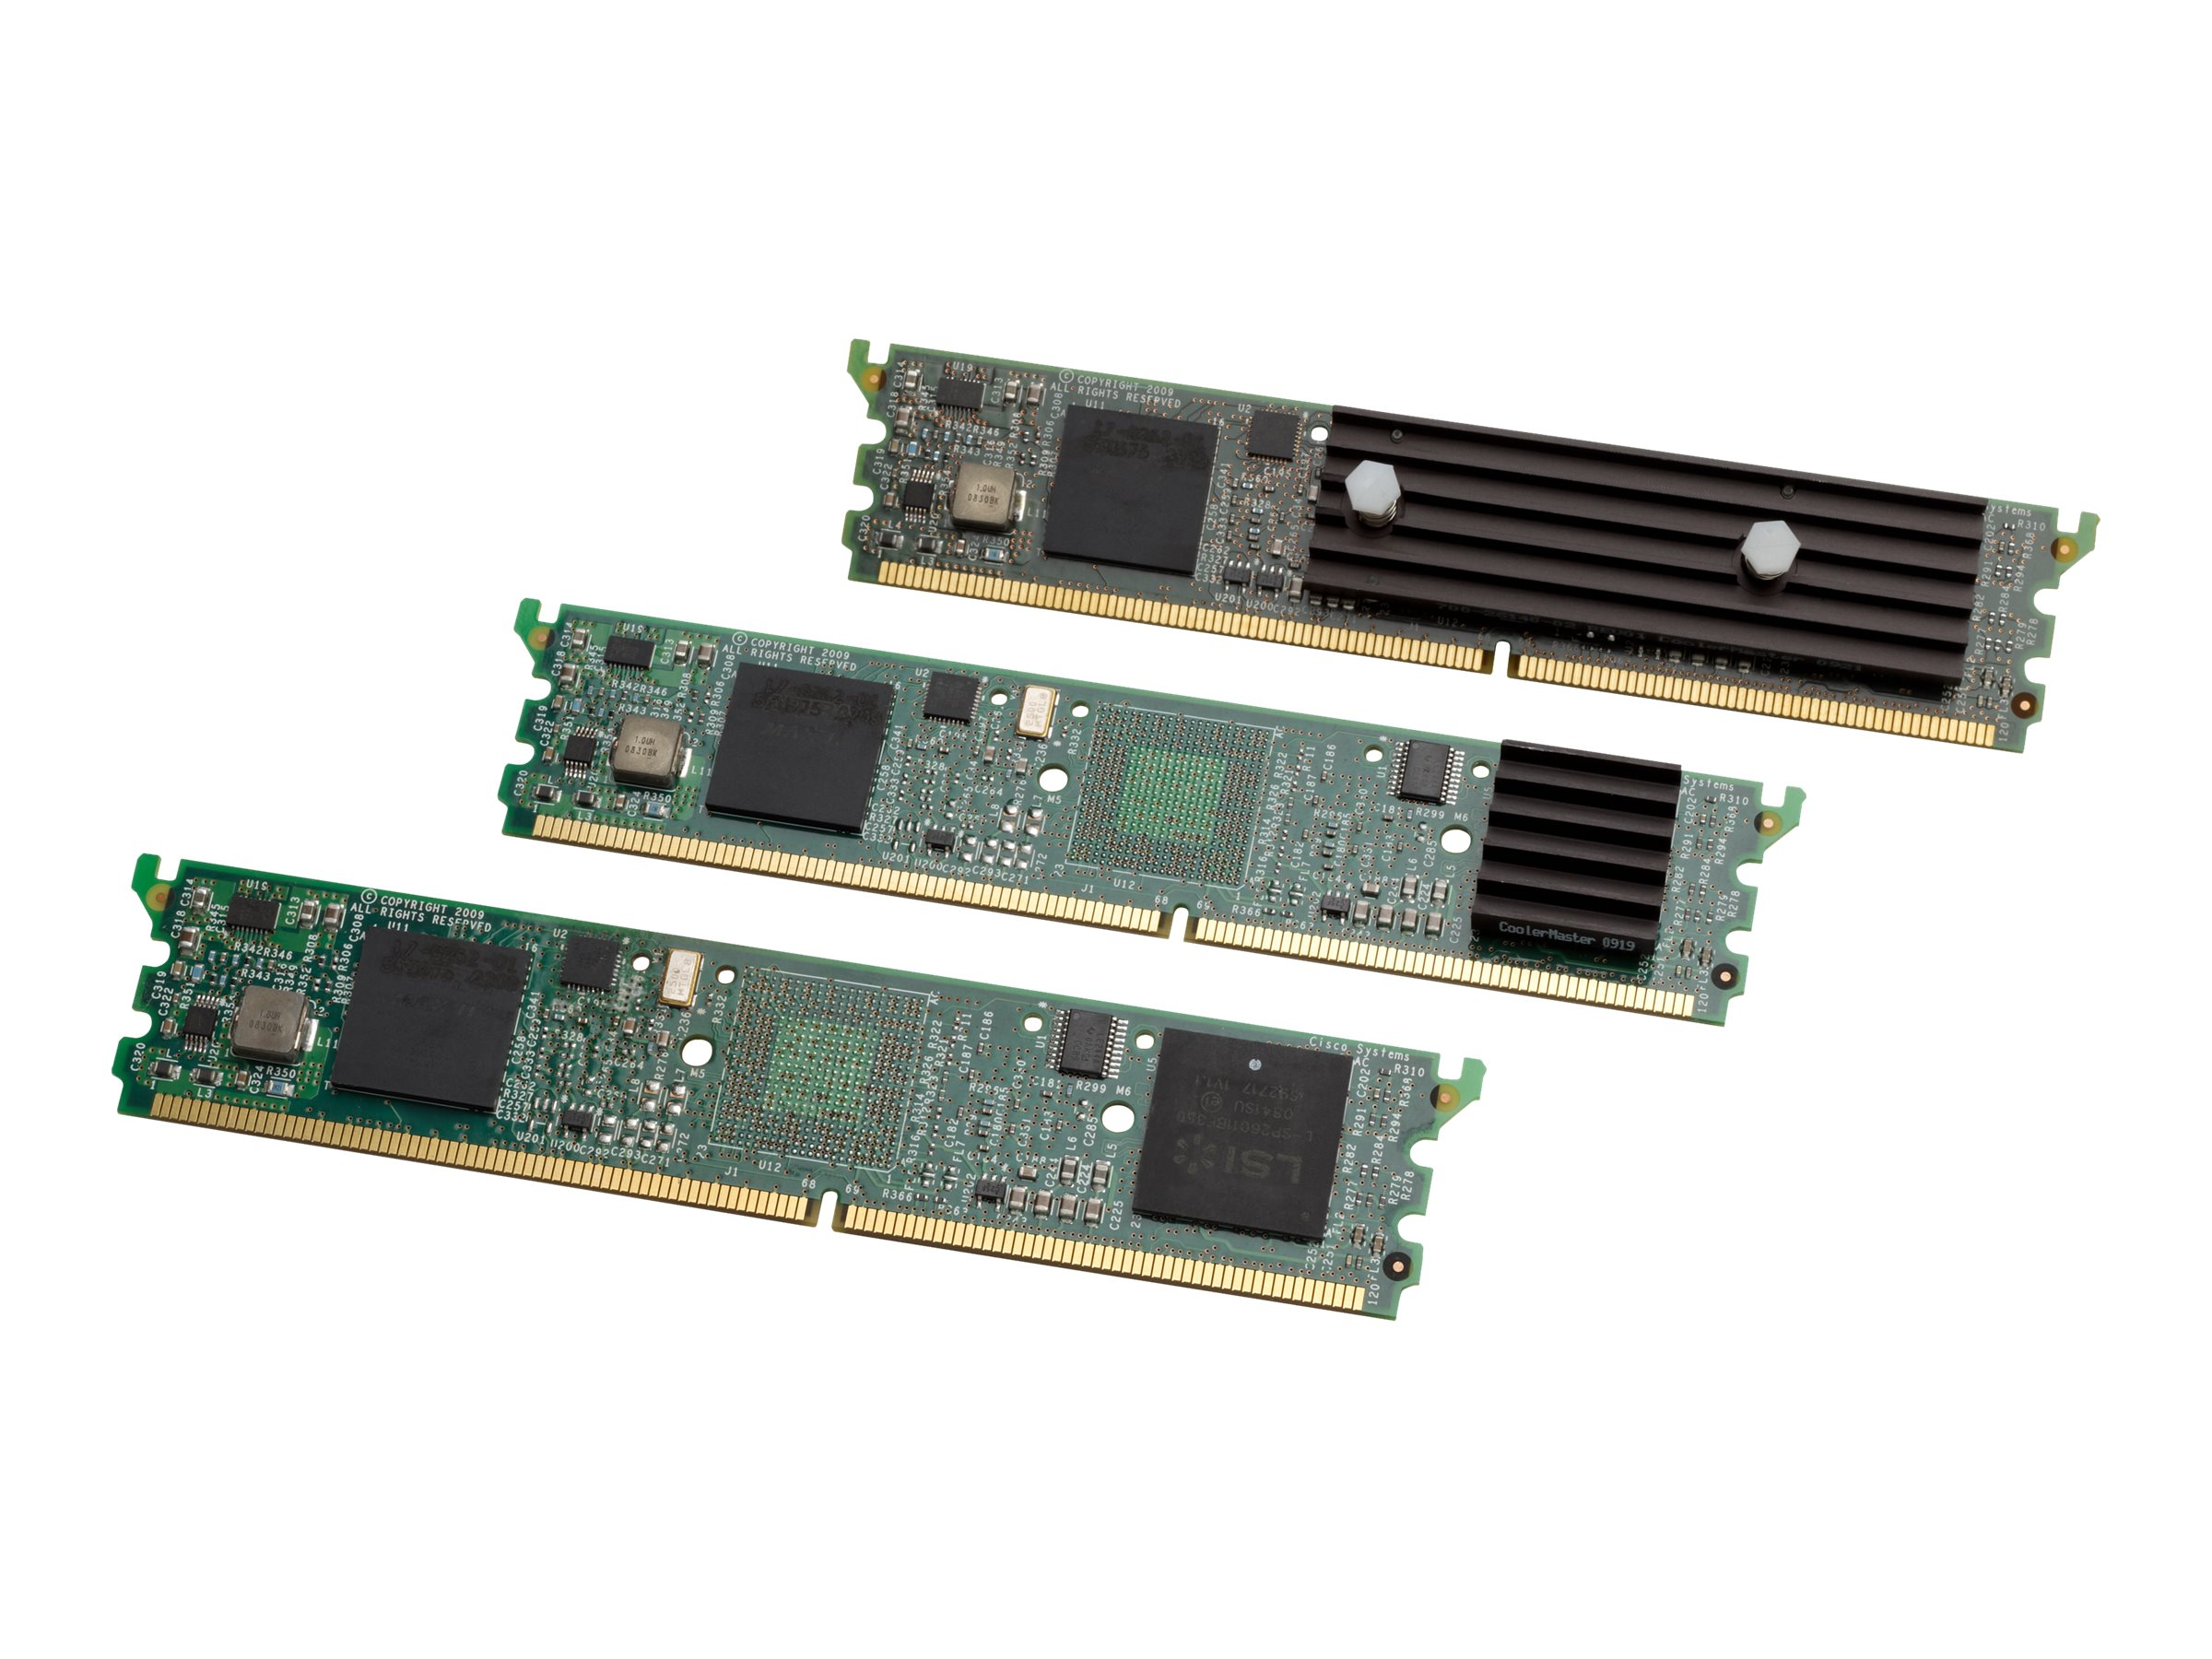 Cisco 16-Channel High-Density Packet Voice and Video Digital Signal Processor Module